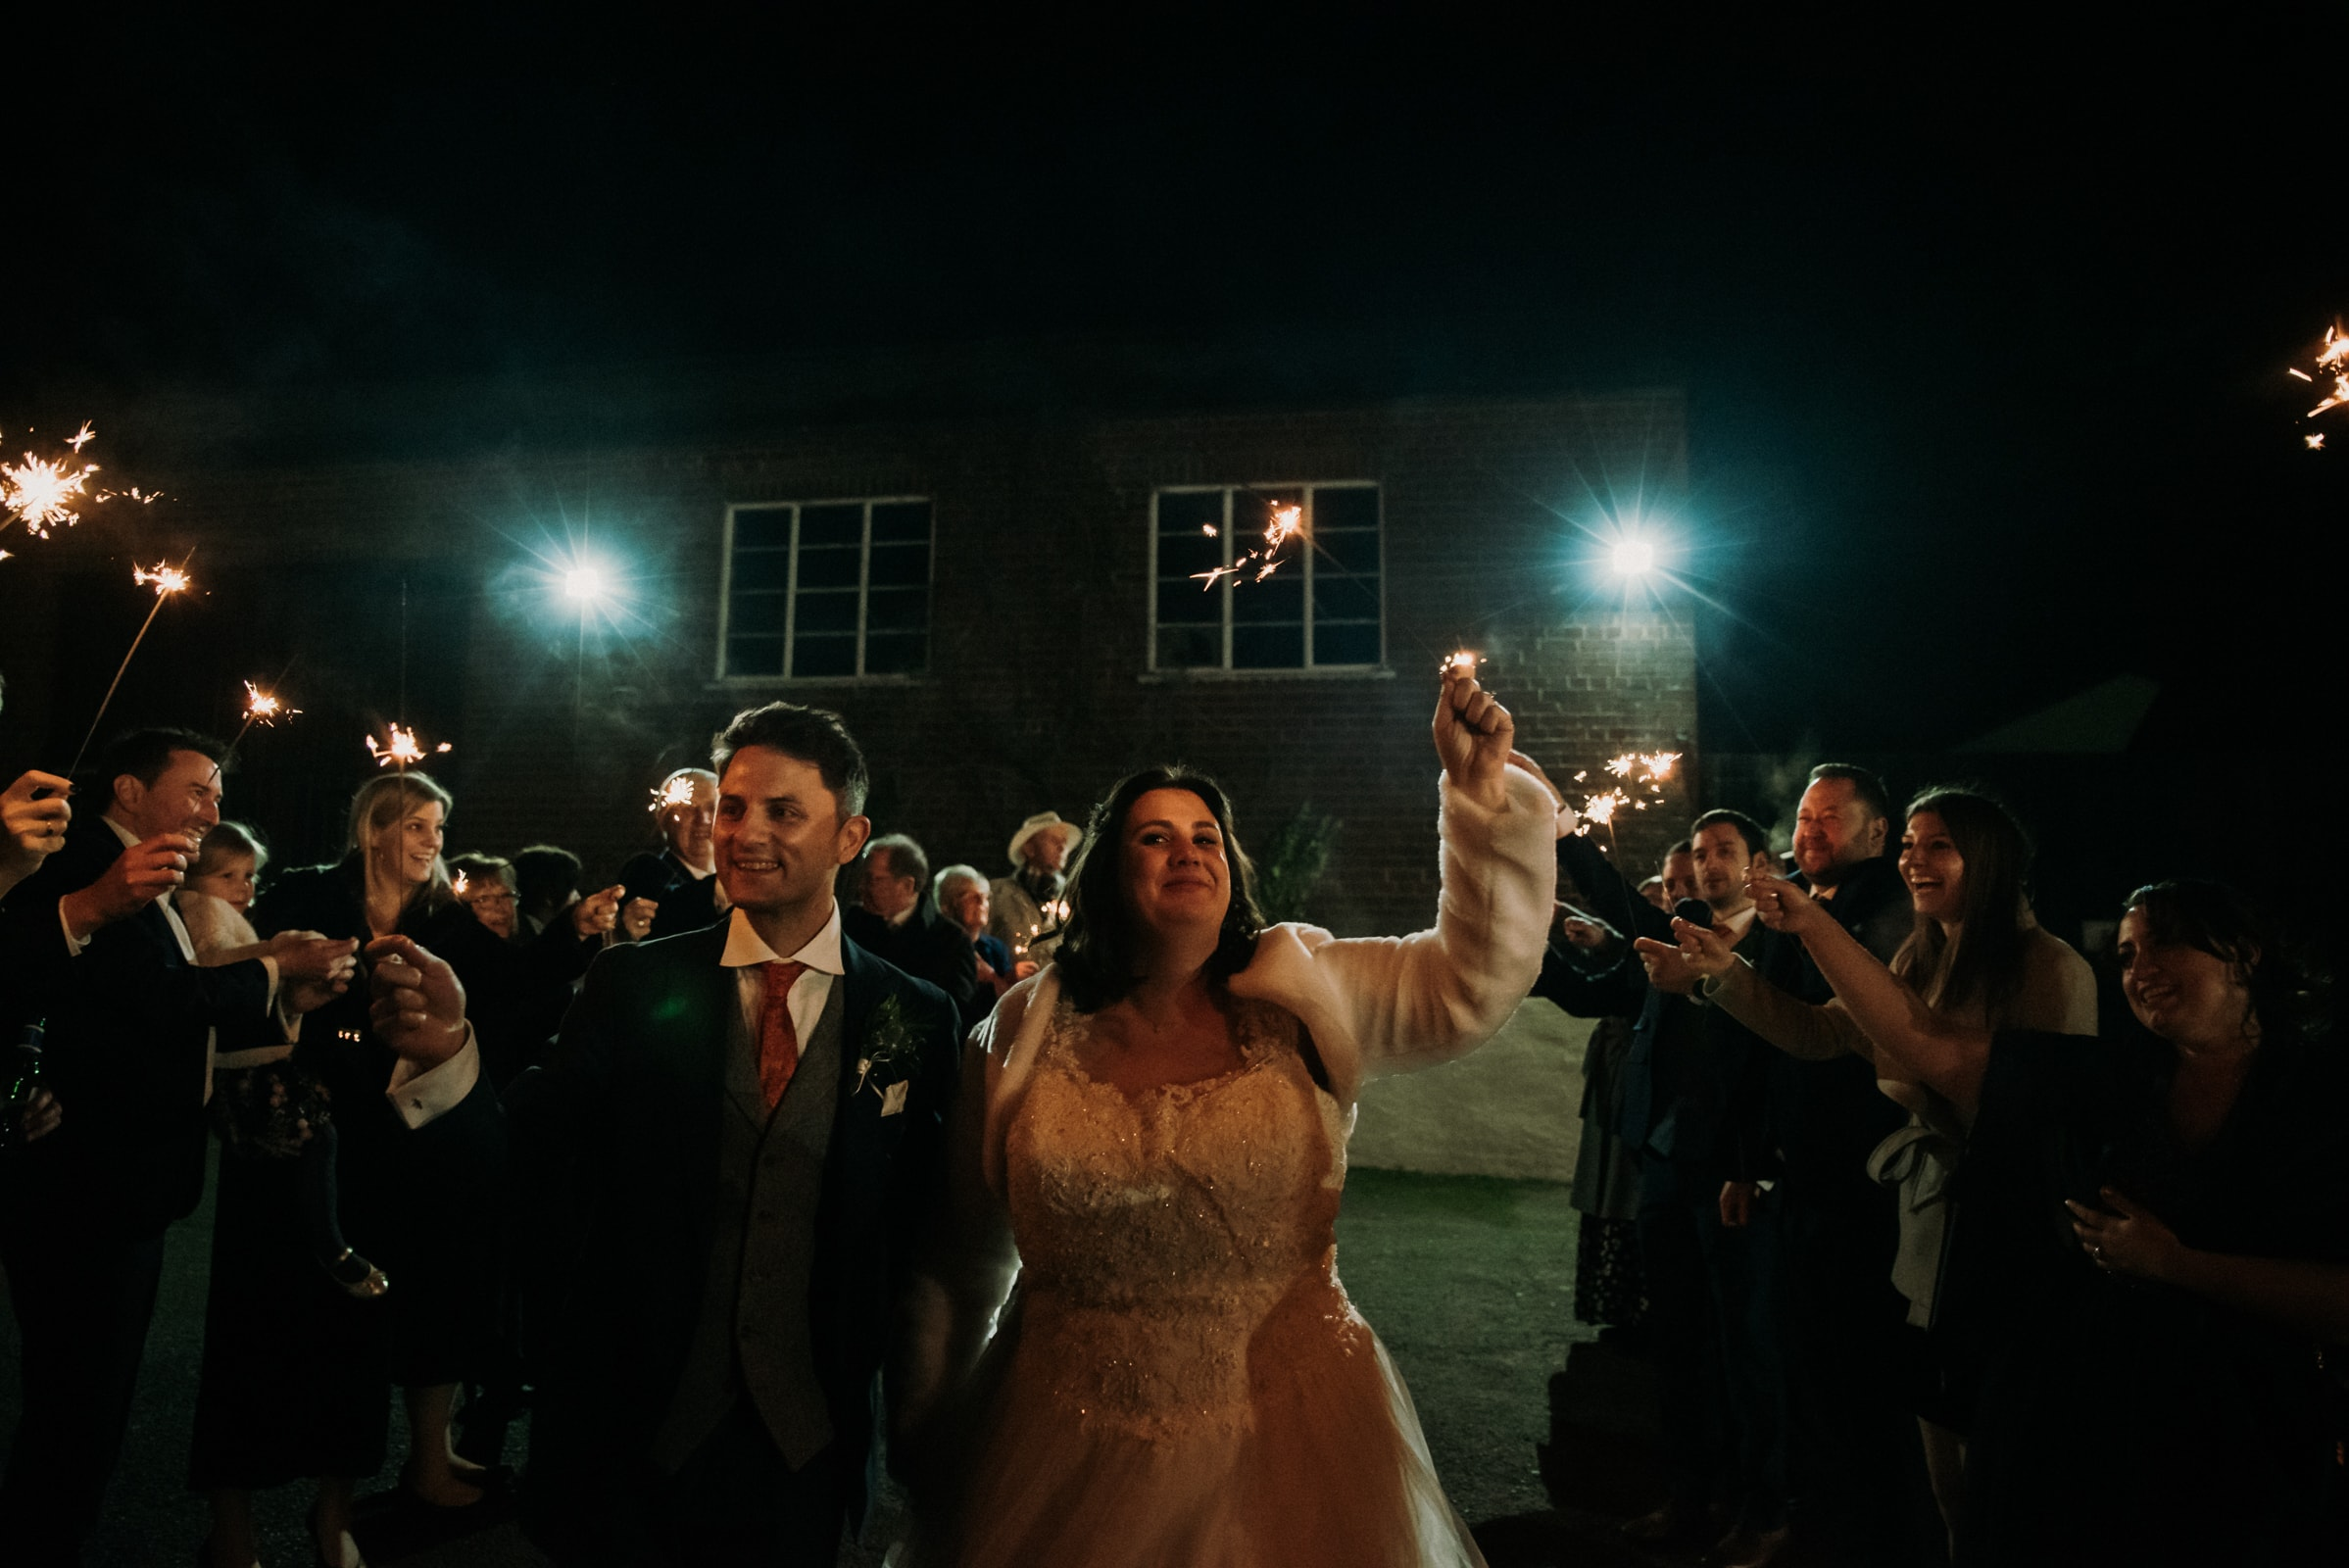 Sparklers exit for the bride ad groom at the reception Roshni photography The Milling Barn, Bluntswood Hall, Throcking wedding photographer